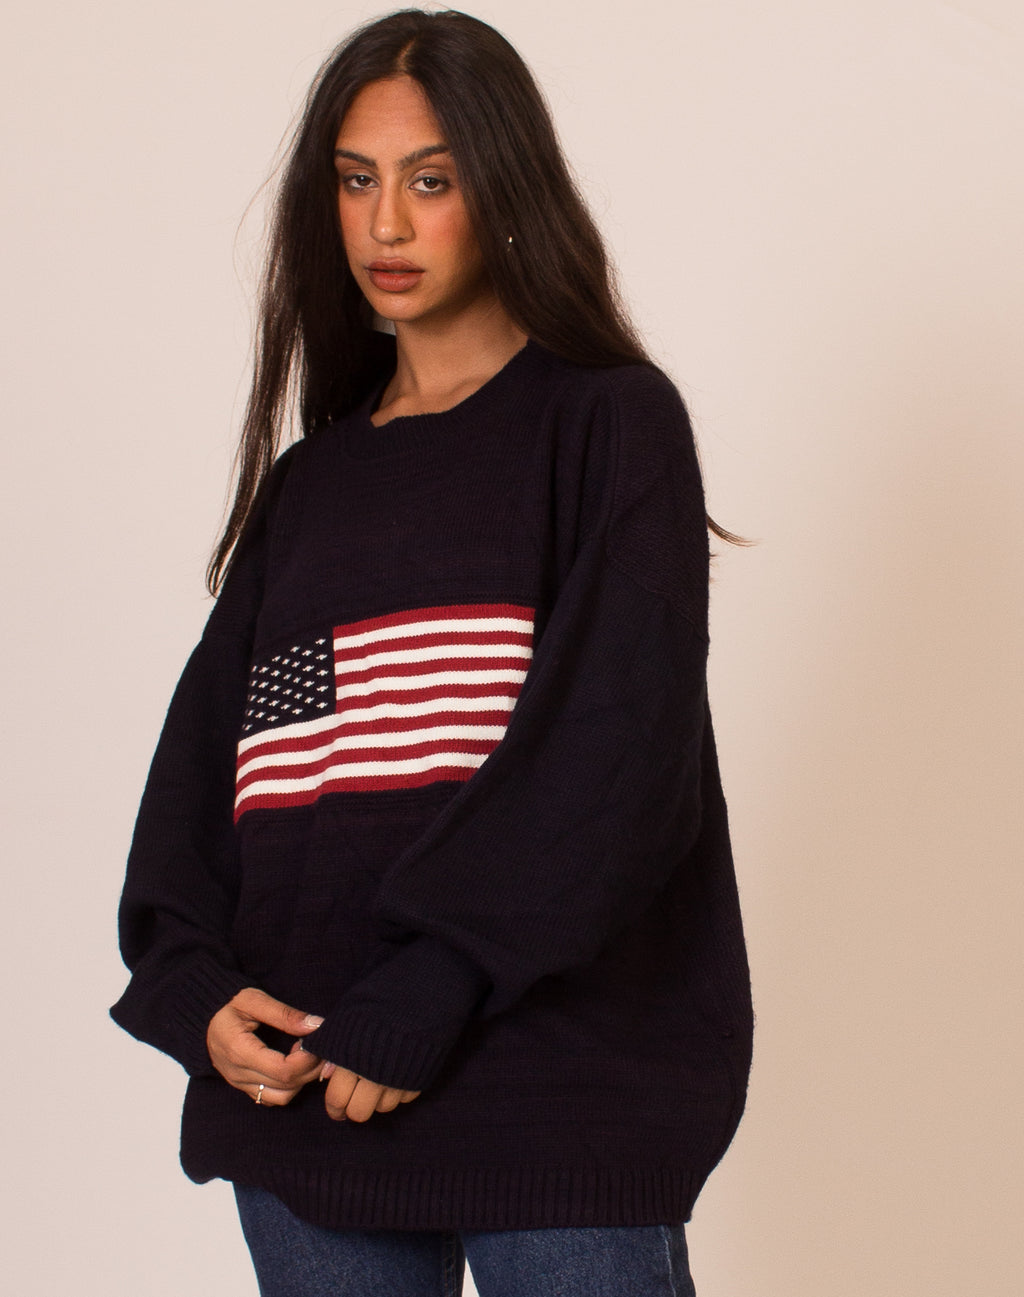 AMERICAN FLAG KNITTED JUMPER